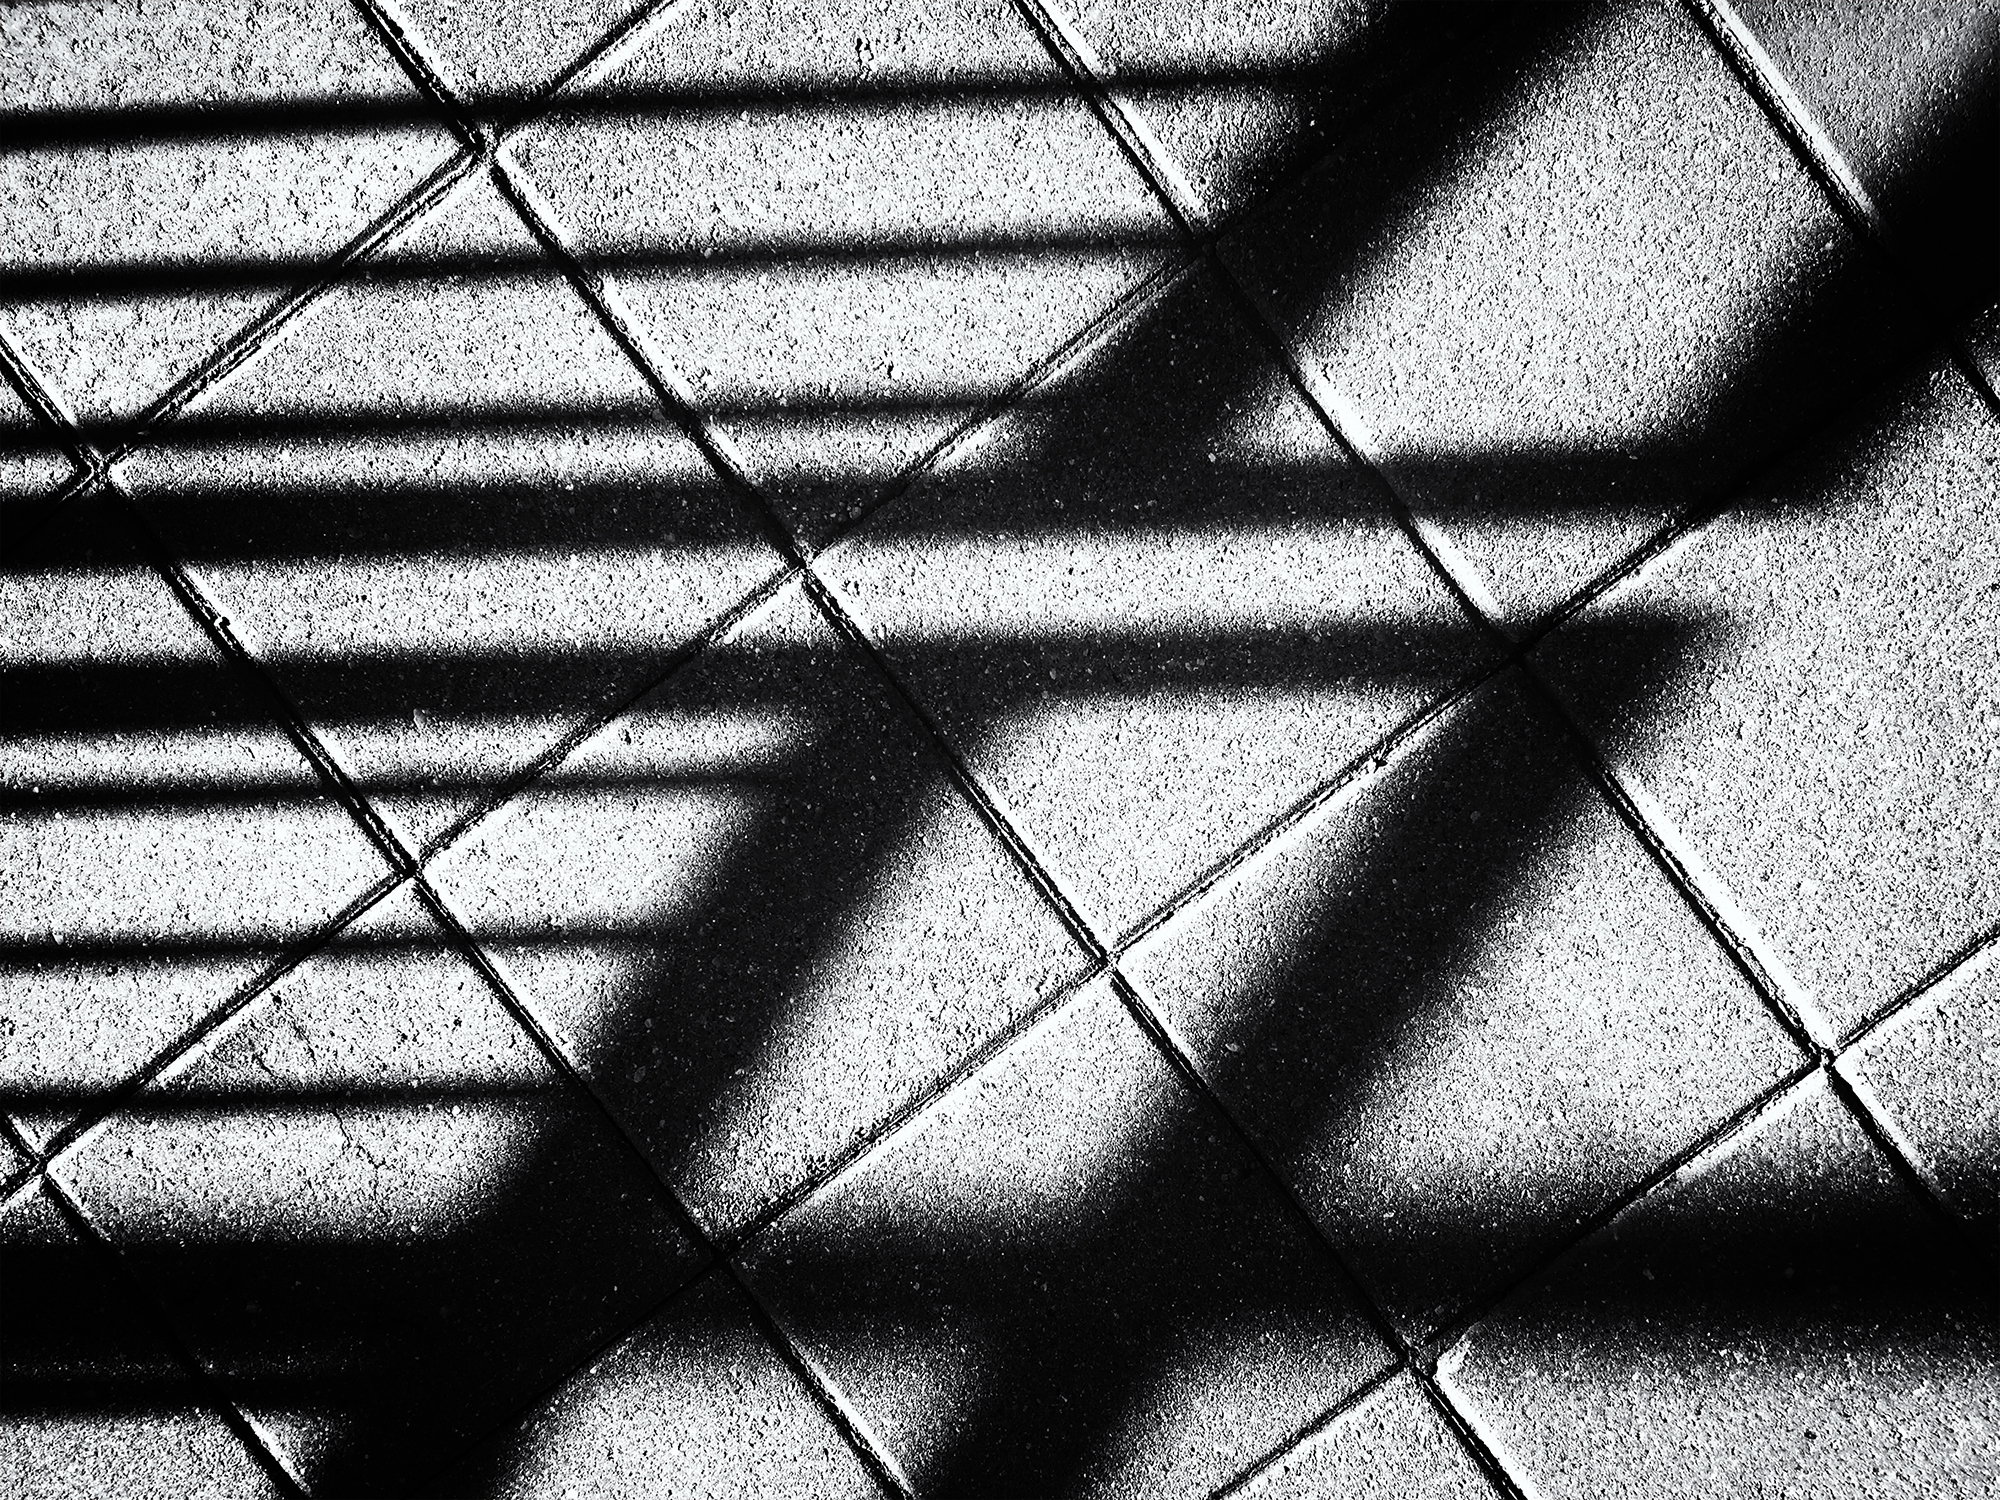 Mall Shadows, #2. Boulder, Colorado, 2016